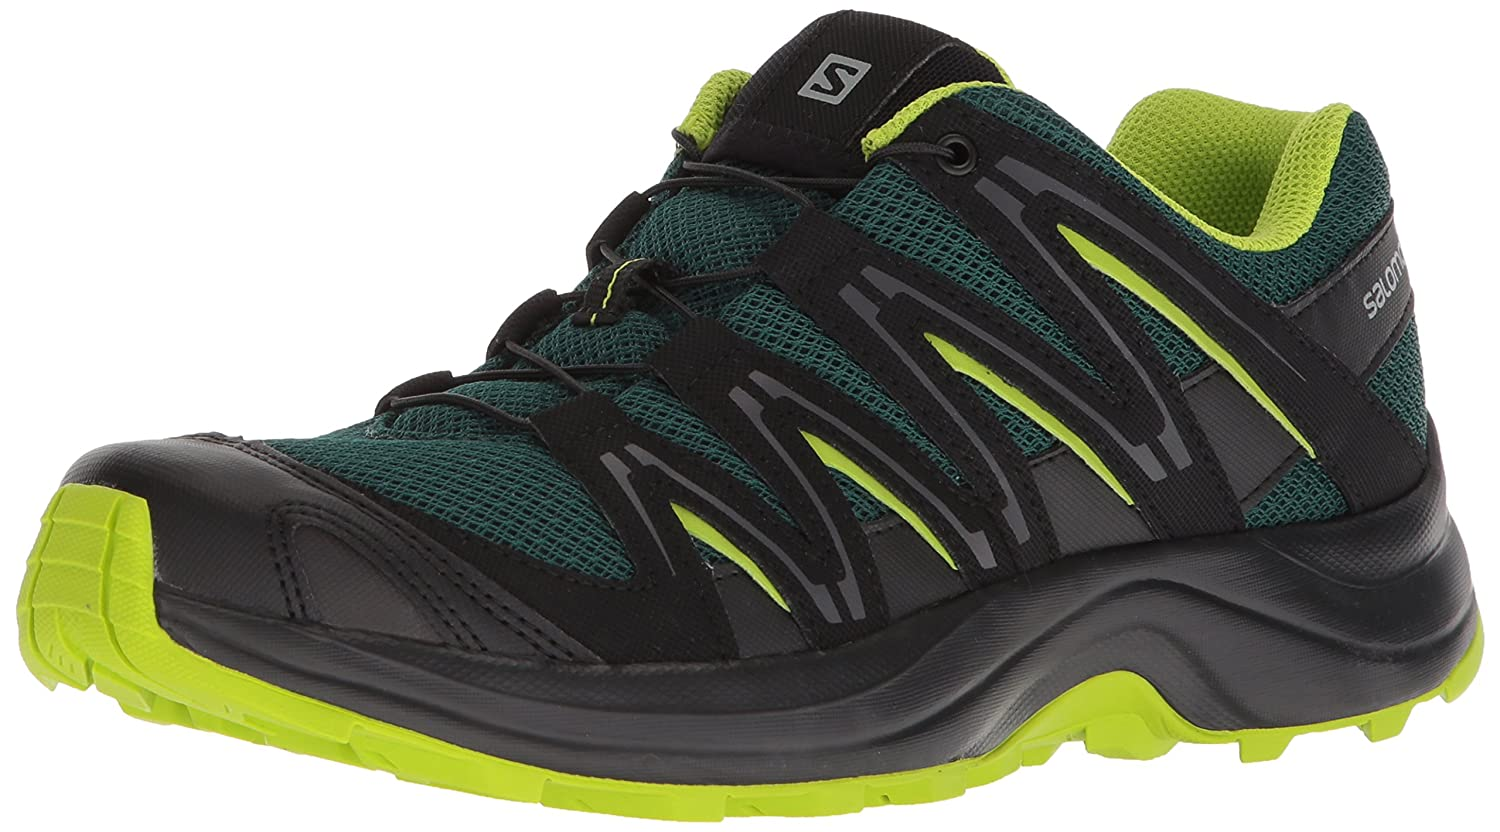 Salomon Men's Xa Baldwin Trail Running Shoe B074KHTQ78 11 D(M) US|Rainforest/Black/Lime Green